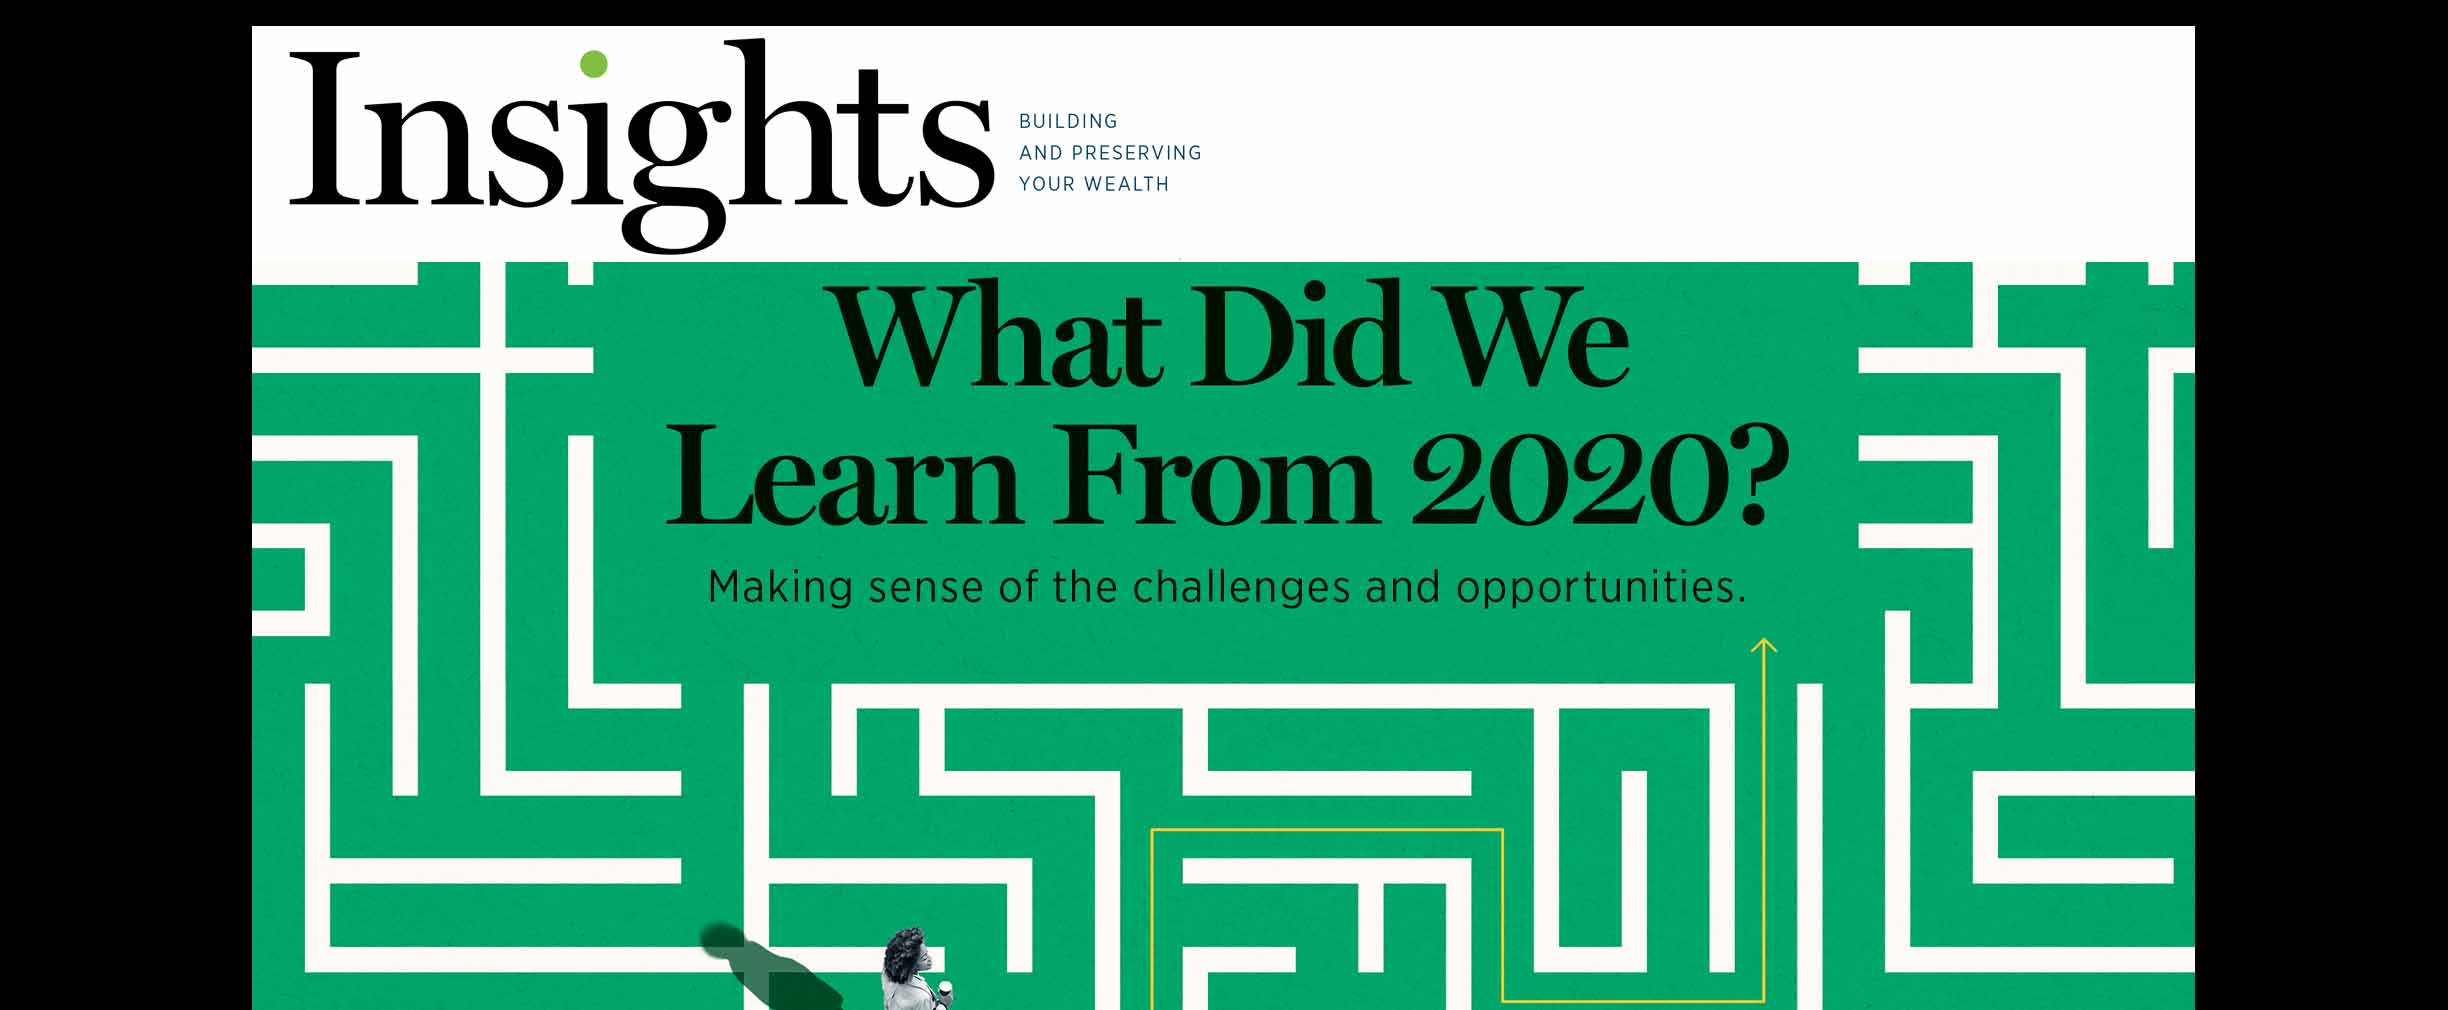 Insights Magazine Winter 2021 Cover